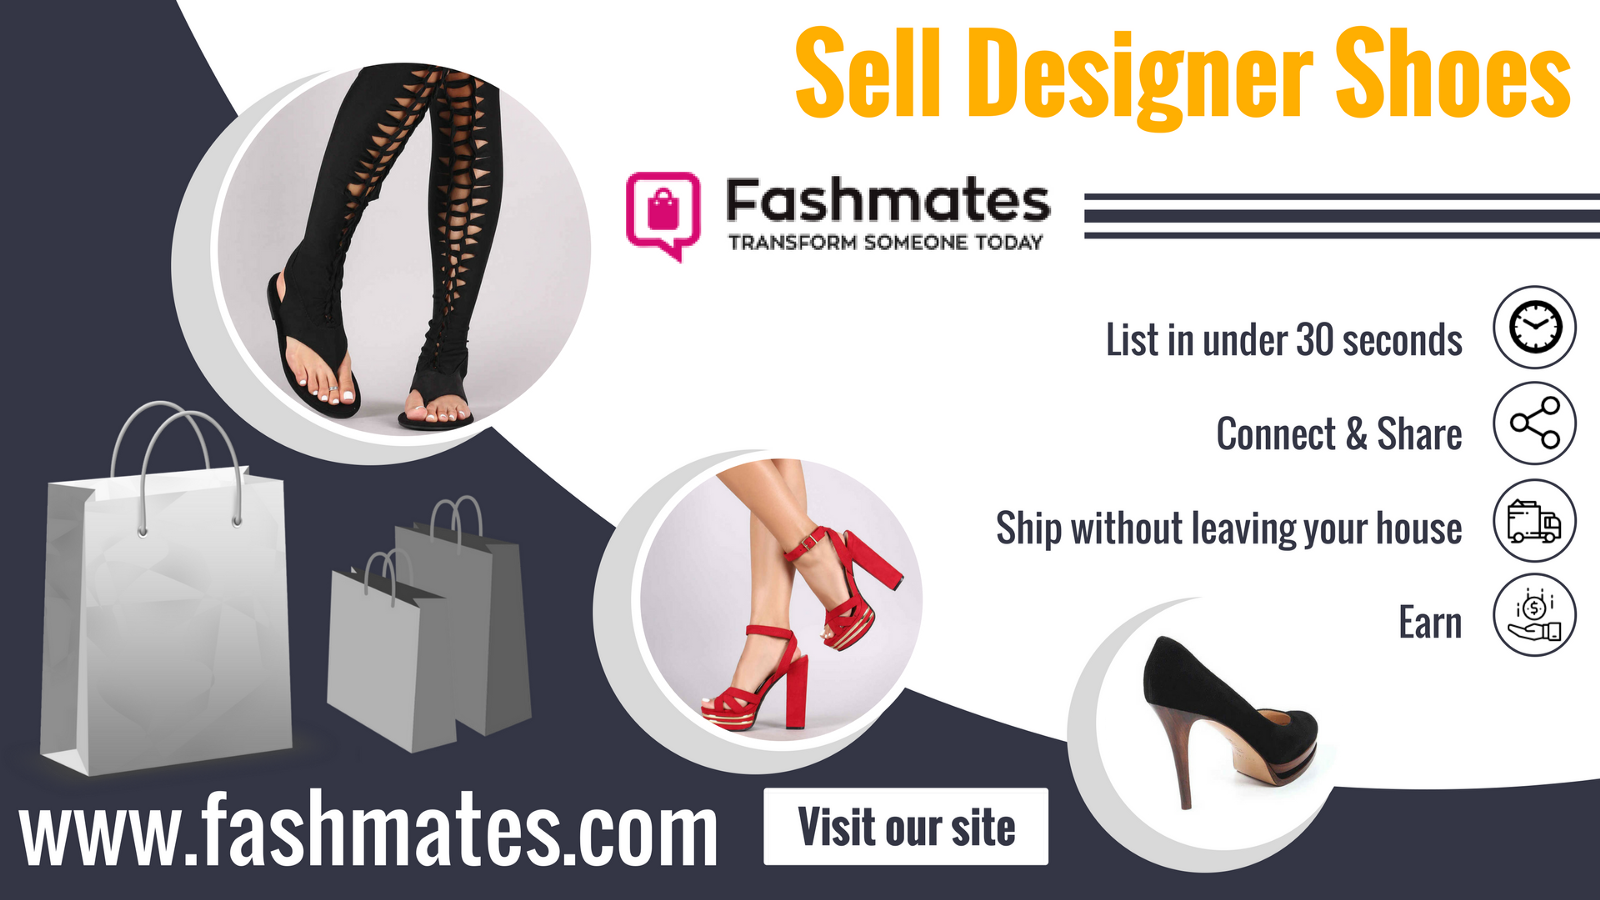 085dceaa492 Fashmates. To fetch an impressive resale price